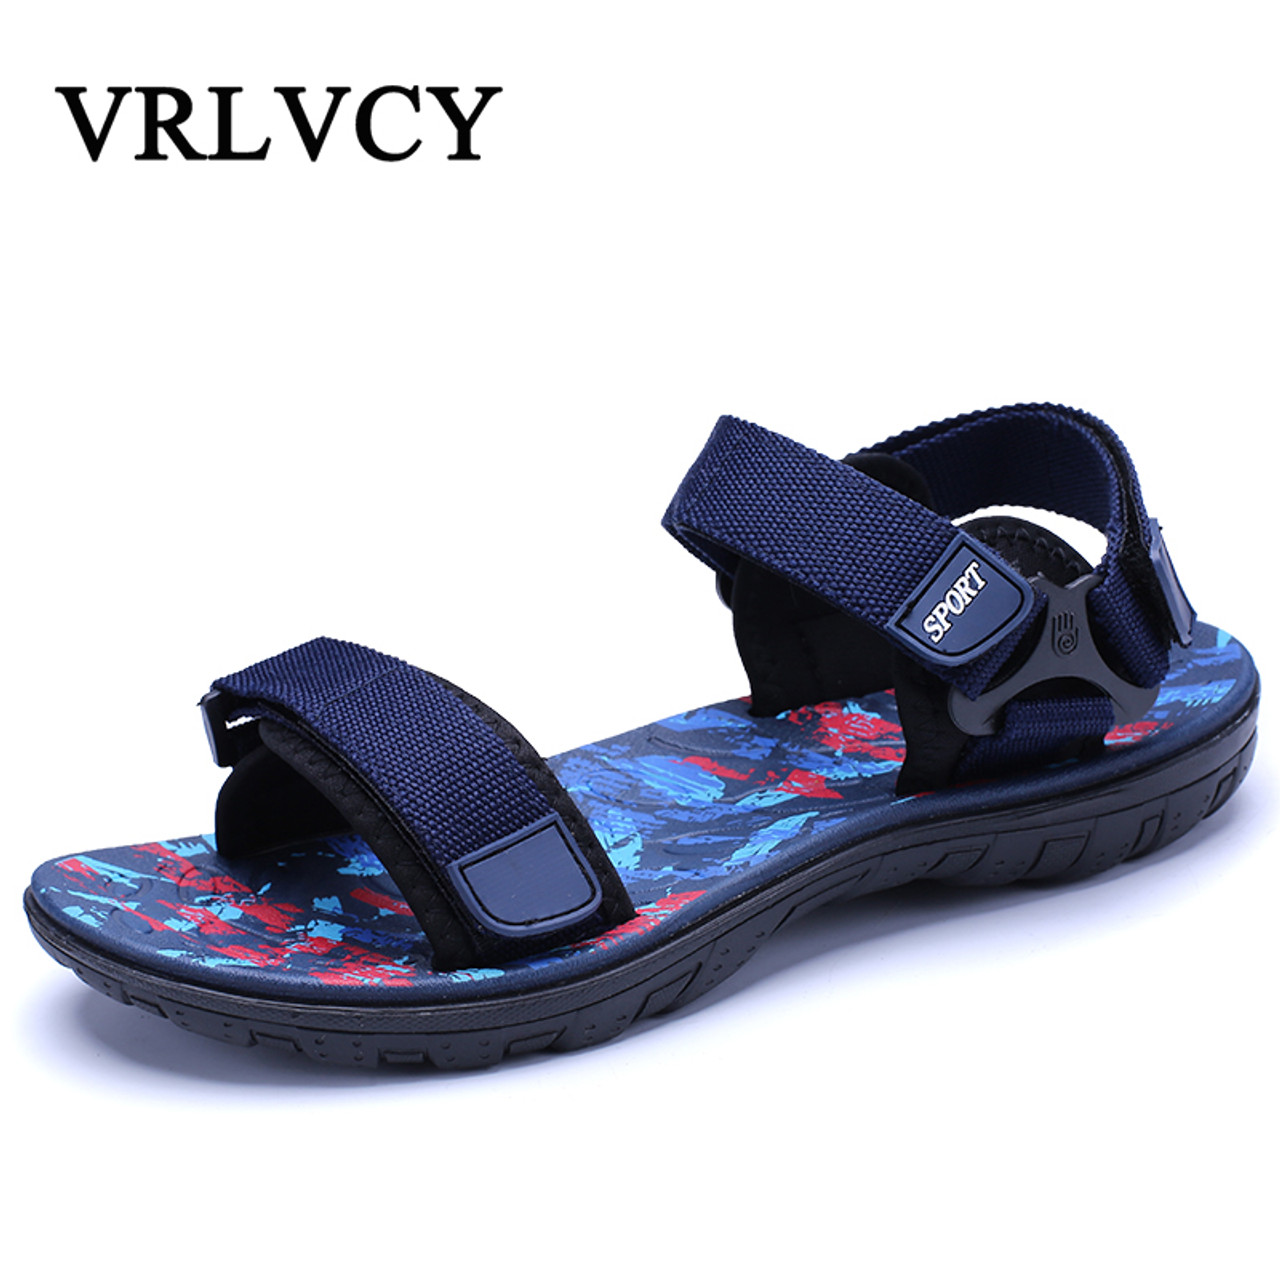 5003c451c9eb46 New Sandals Men Summer Beach Shoes Sandals Designers Mens Sandals Slippers  For Men Zapatos Sandalias Hombre ...